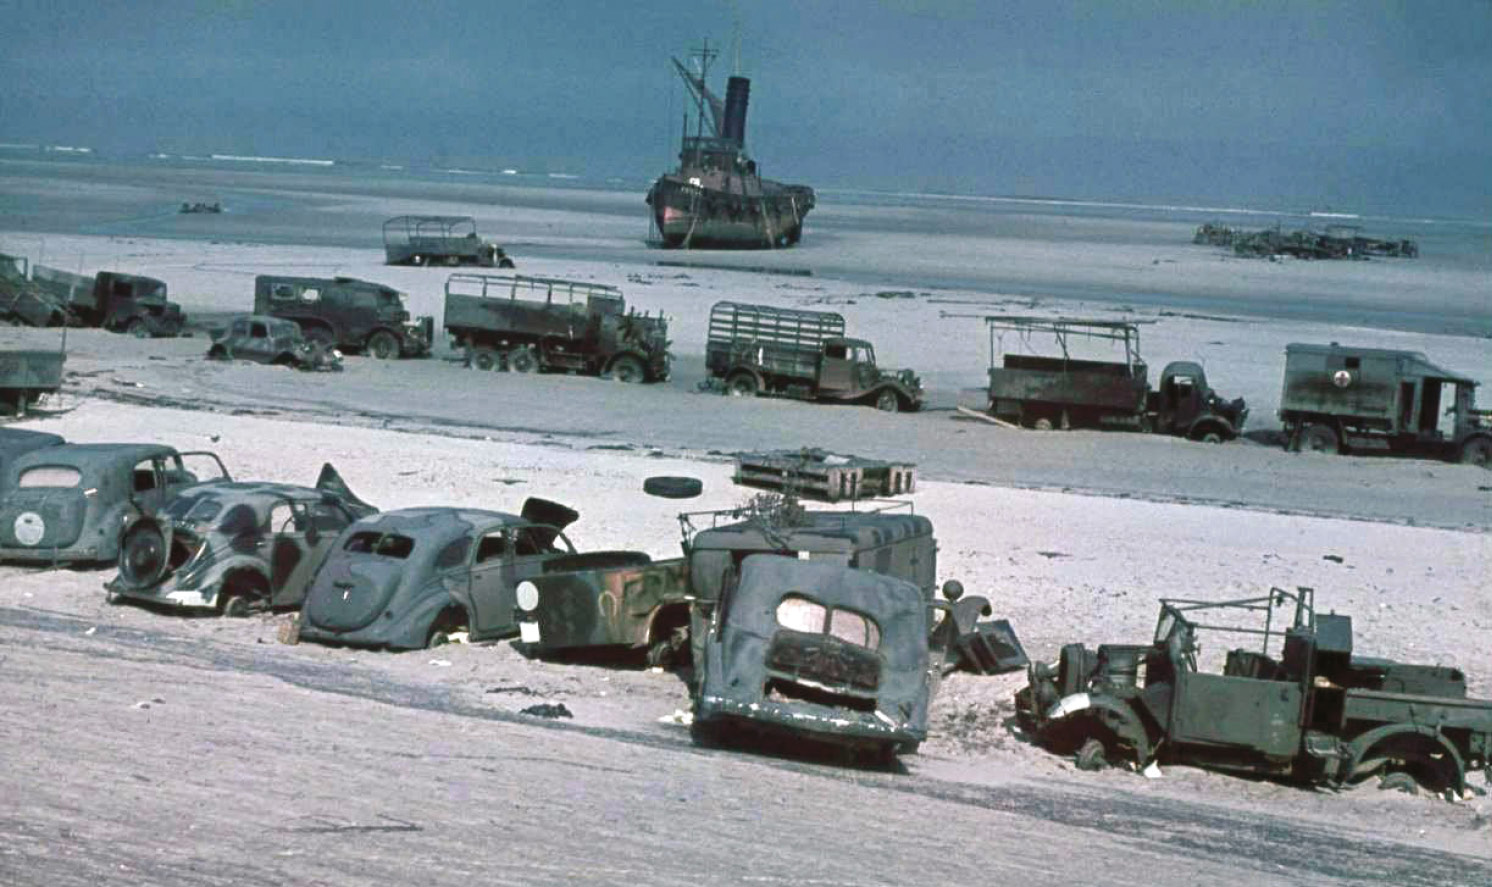 ABOVE Abandoned British kit on the Dunkirk beaches. But 340,000 men were evacuated saving the British Army for the defence of Britain and creating the nucleus of De Gaulle's Free French. This was all thanks to General Gort who disobeyed orders, retreated to the Channel, and was soon thereafter sacked.